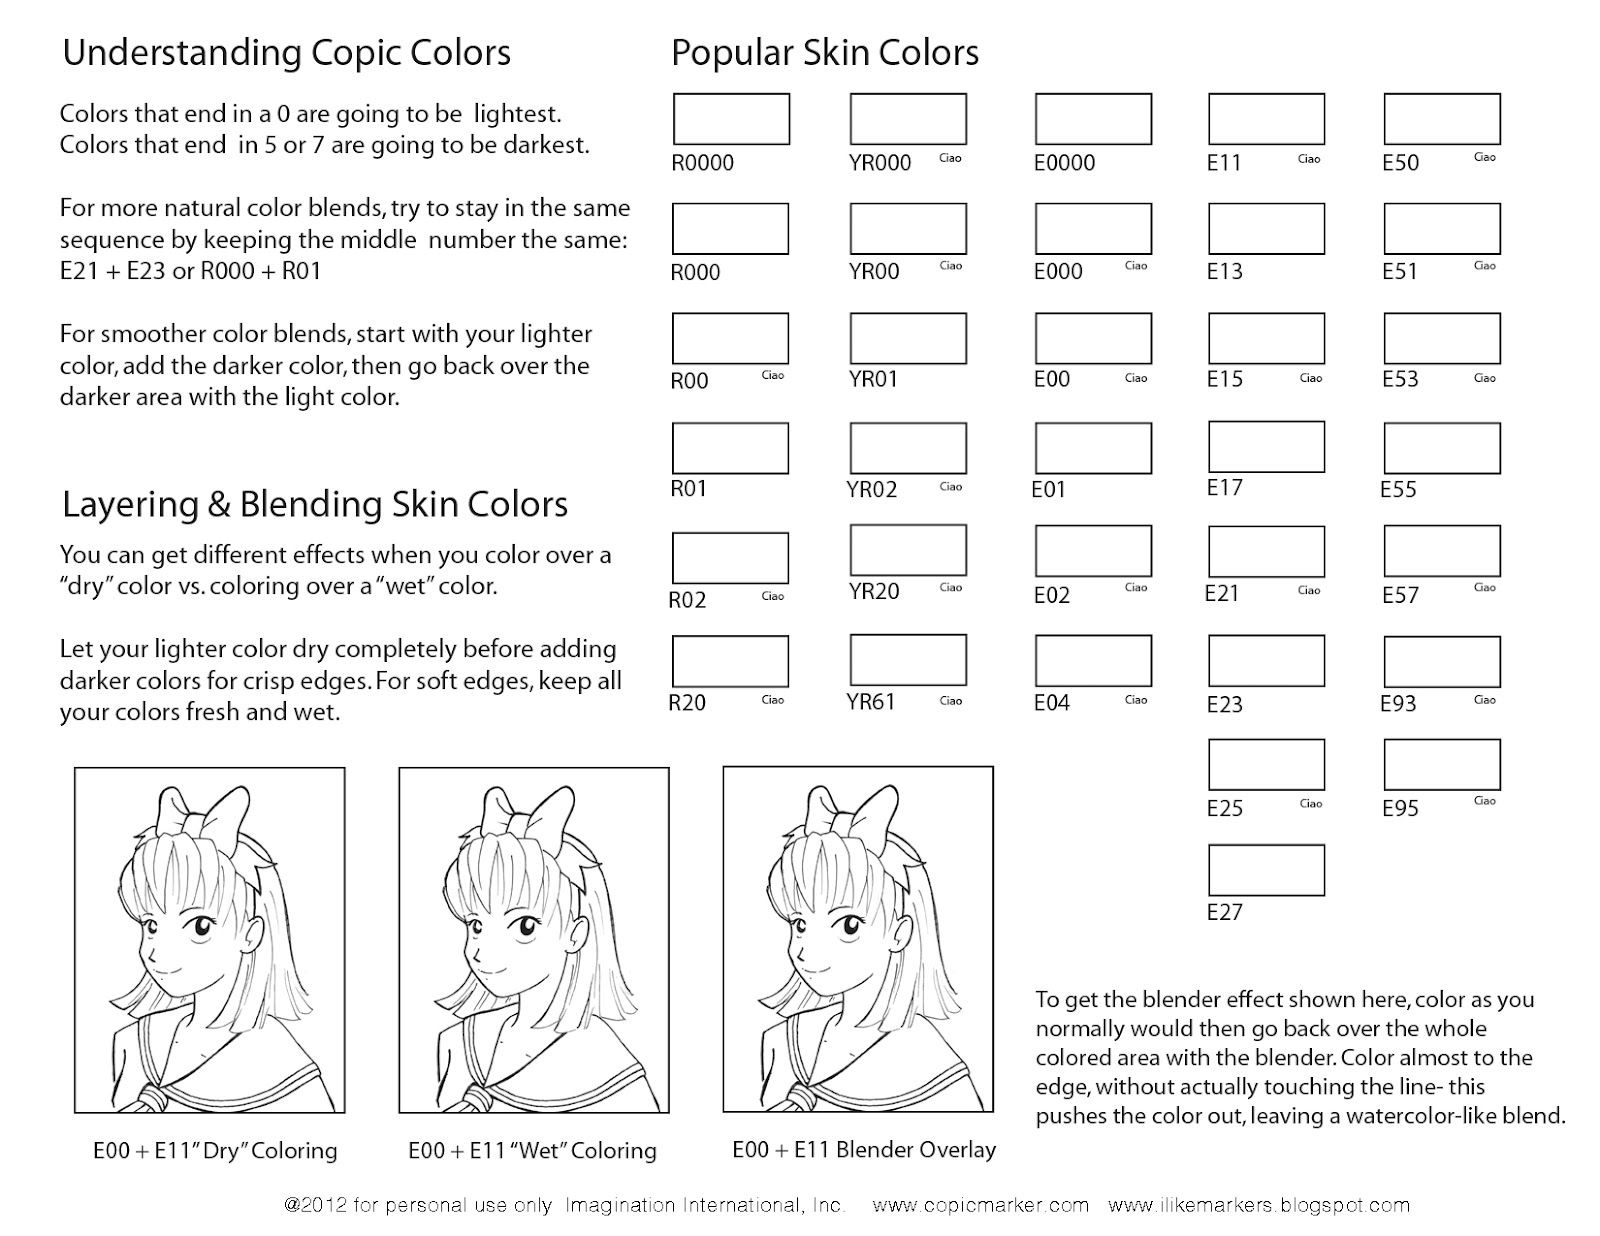 Popular copic skin colors blank sheet for practice and popular copic skin colors blank sheet for practice and reference print on nvjuhfo Image collections